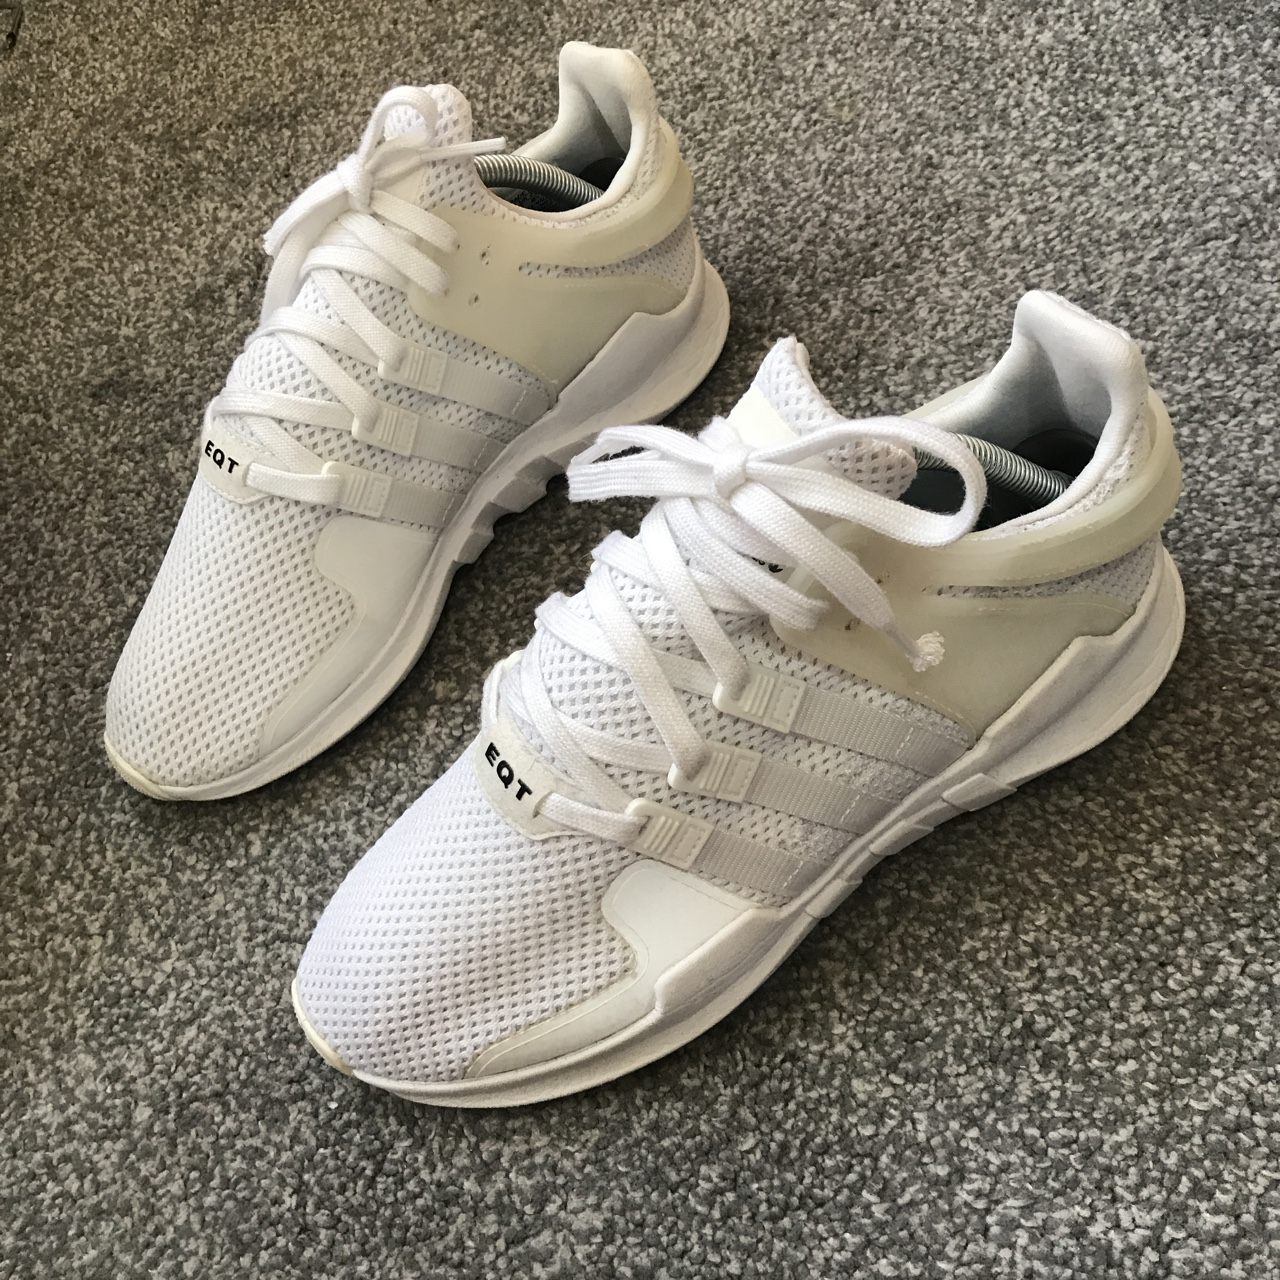 White Adidas EQT reflective trainers in